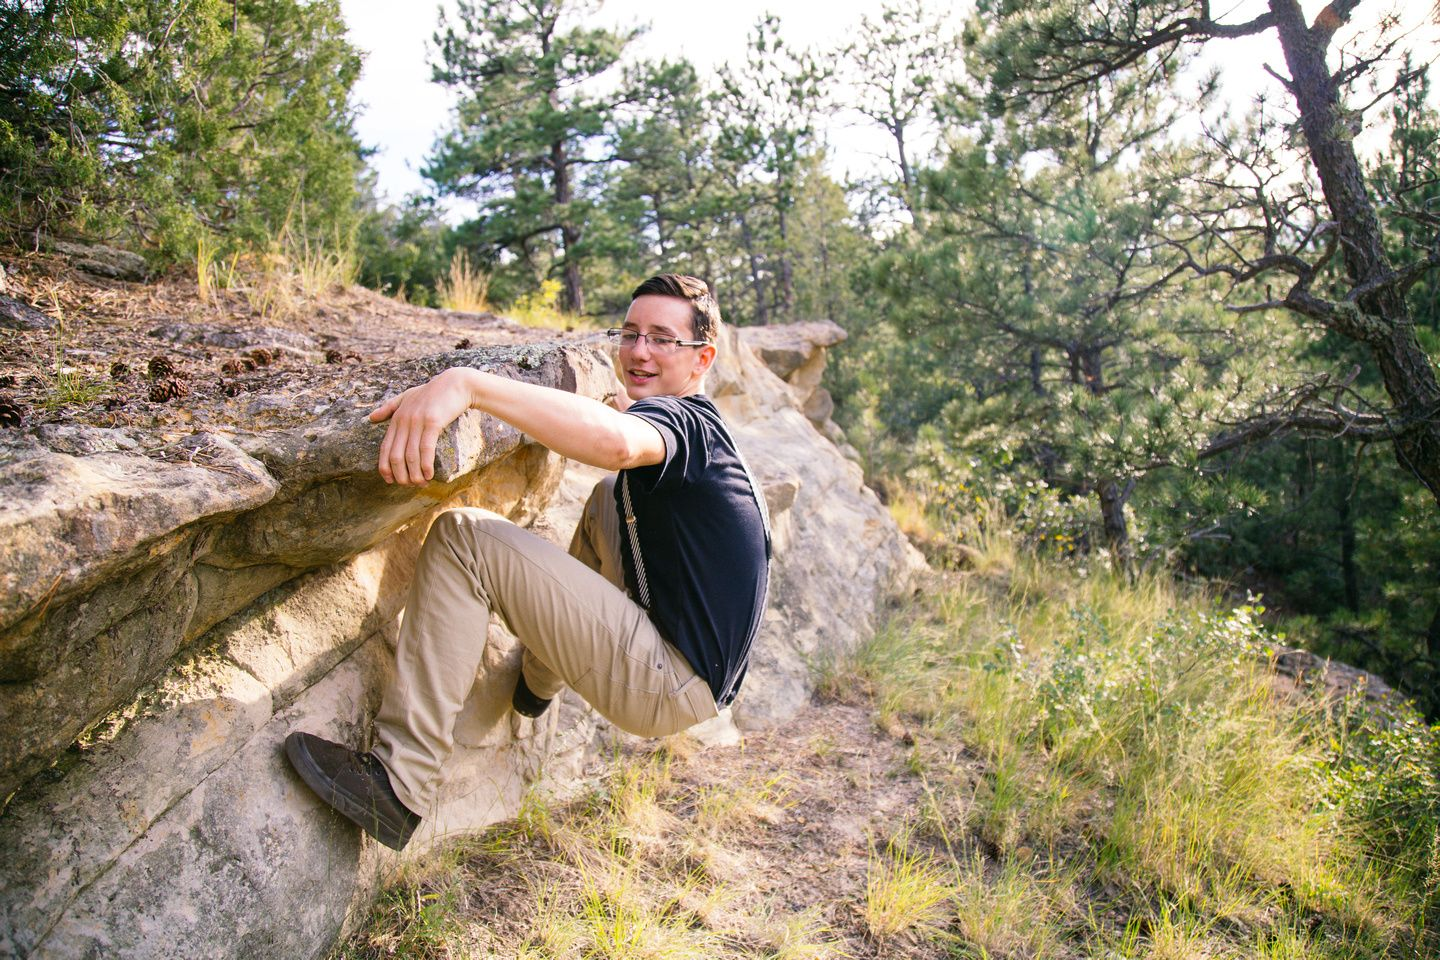 Colorado Springs | Candid Teen Photography | Candid Keepsakes Photography